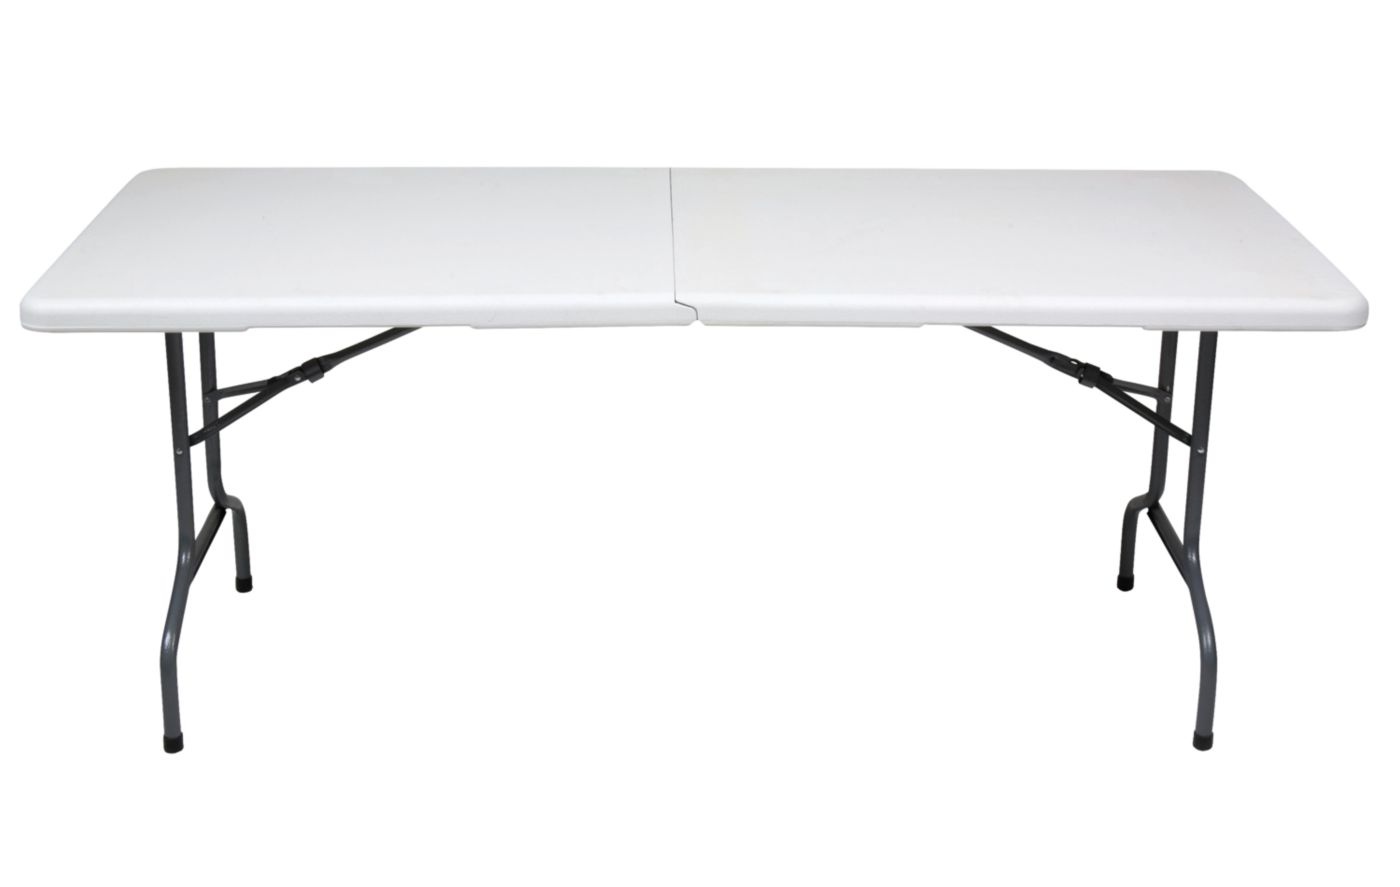 Enduro 5 Ft. Center Folding Table